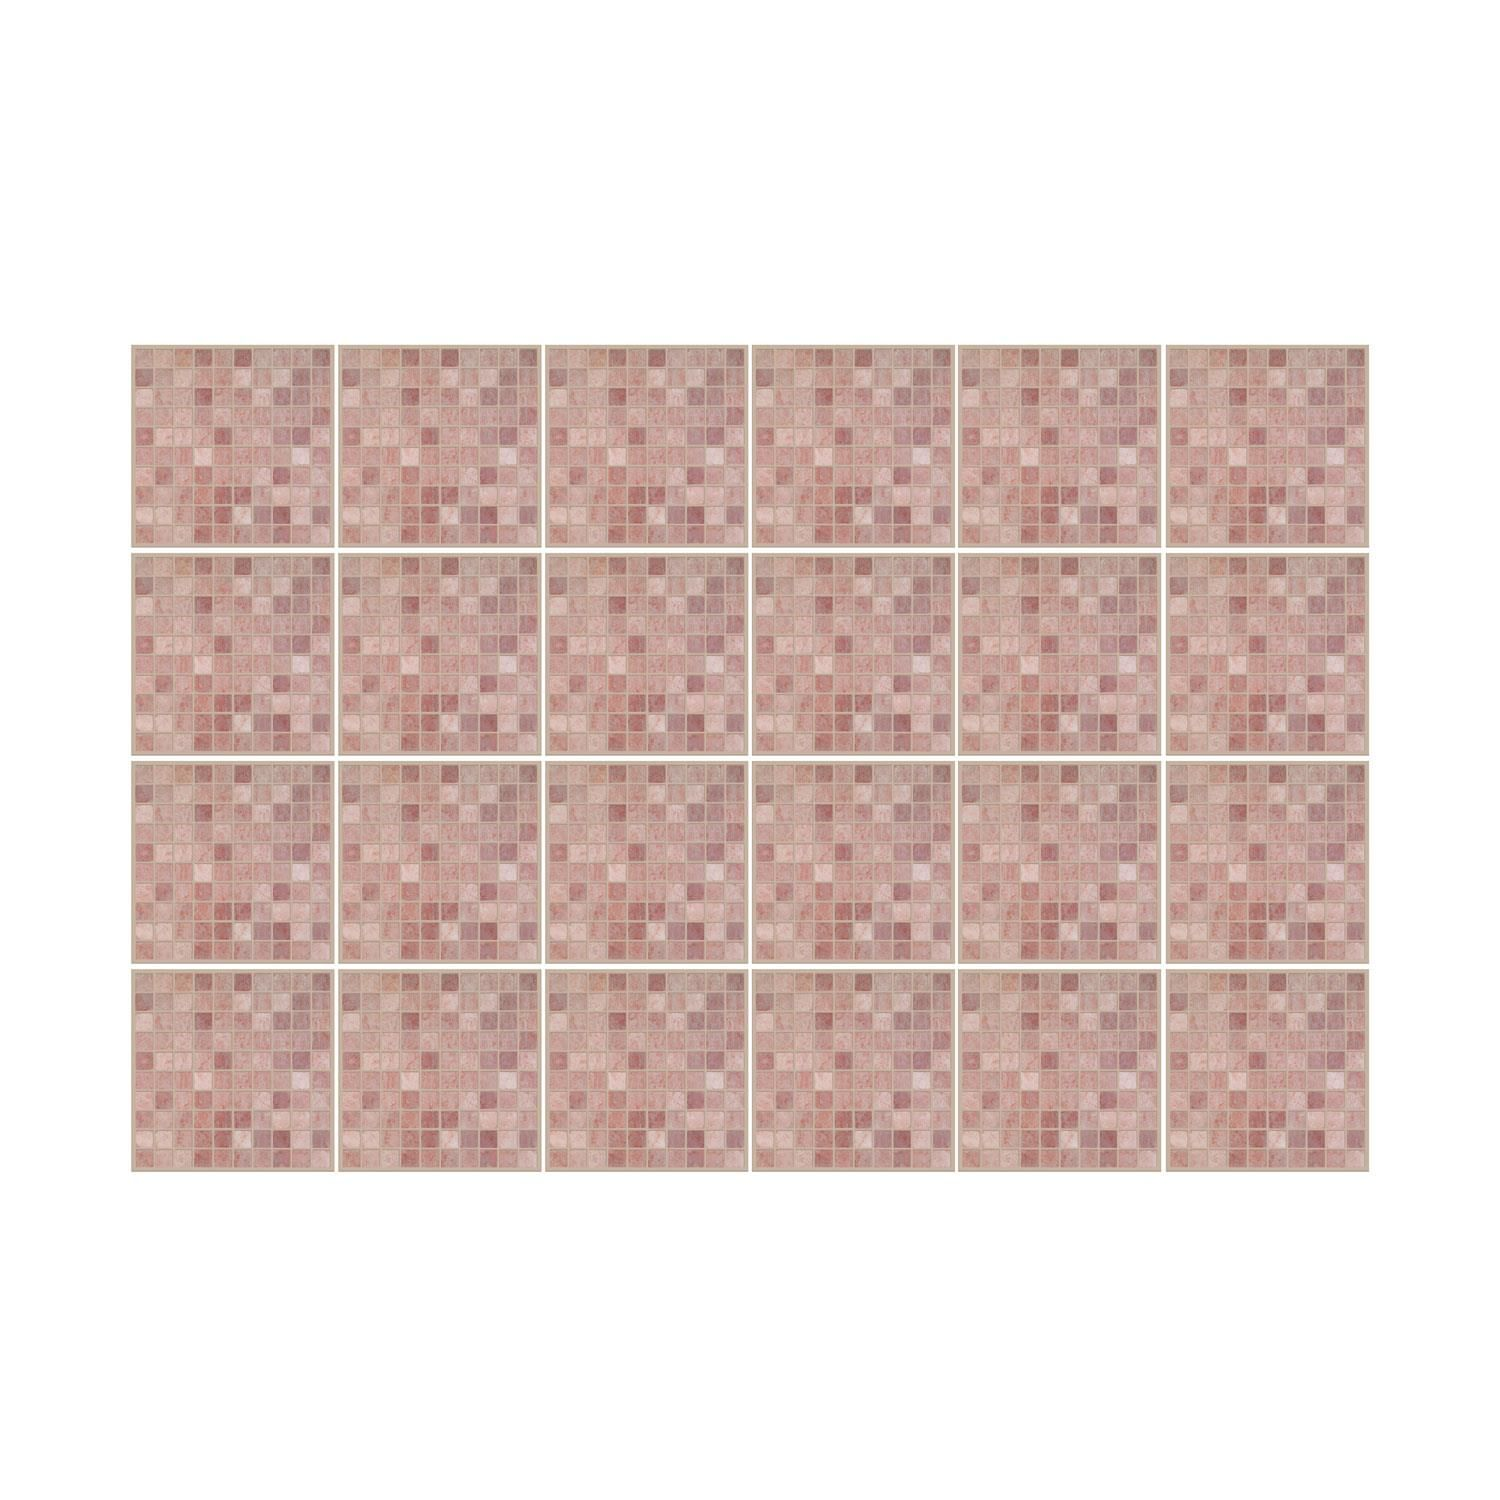 Vintage Pink Marble Mosaic Wall Tile Sticker Set - 15cm (6inch) - 24pcs one pack Self Adhesive DIY Wall Sticker